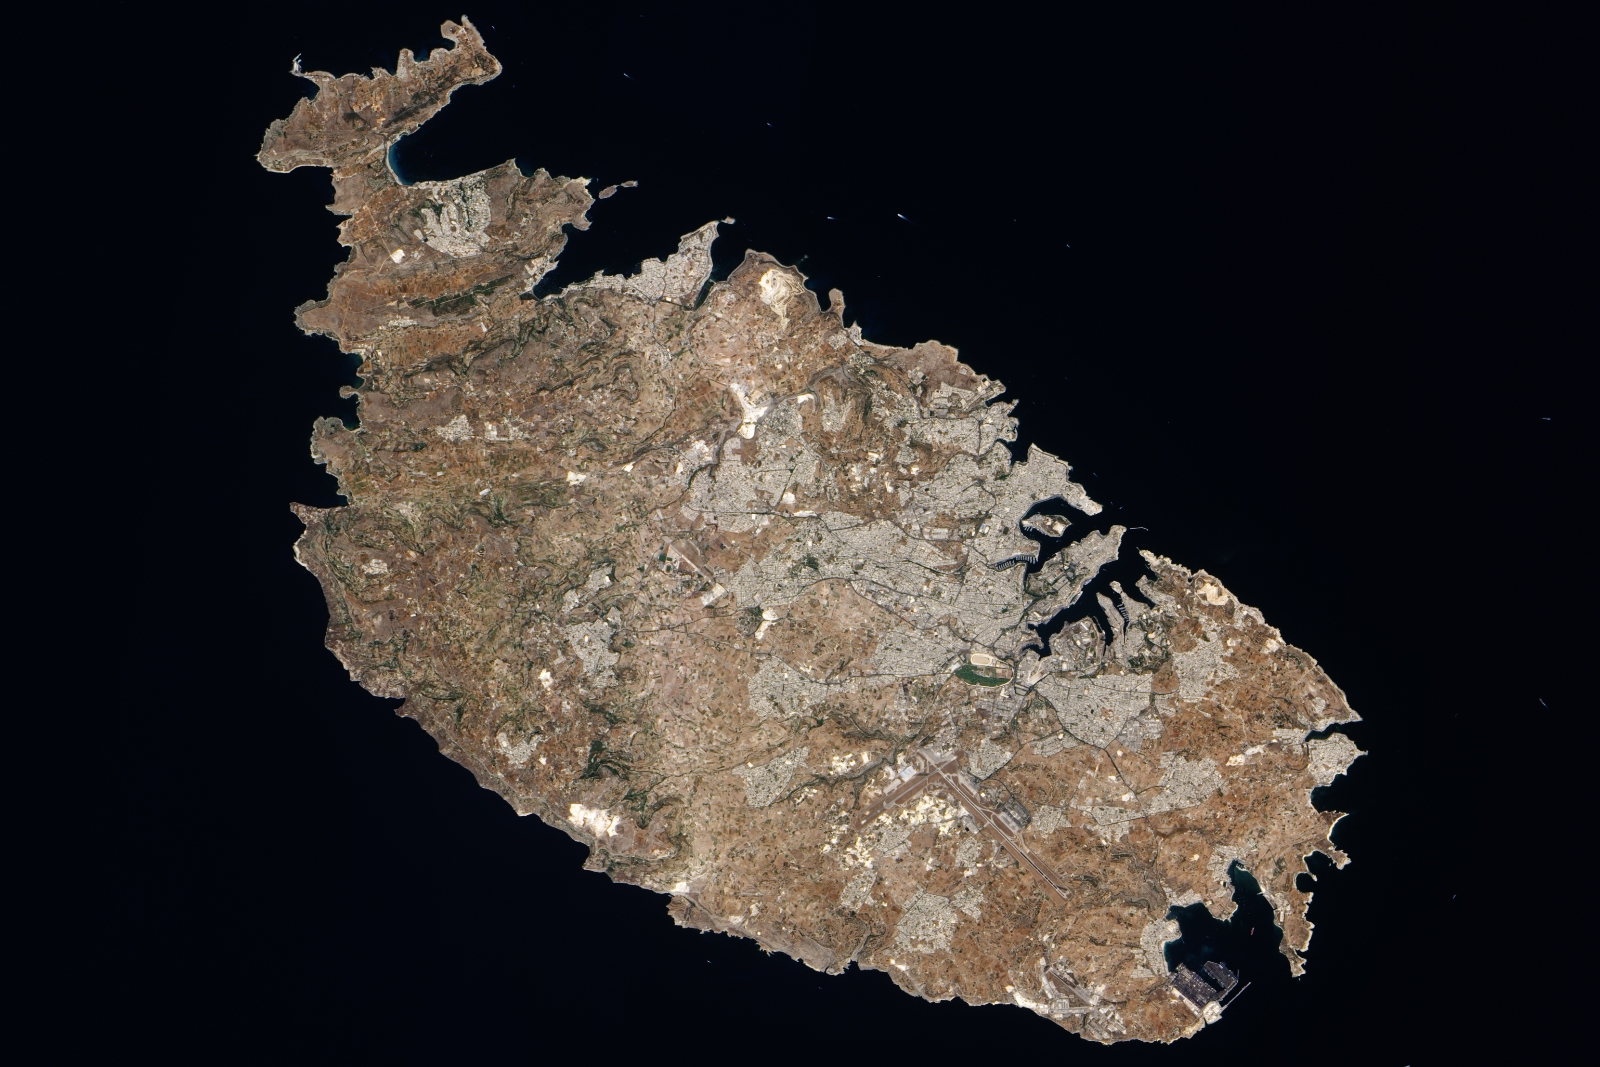 Malta, Europe, Satelite view